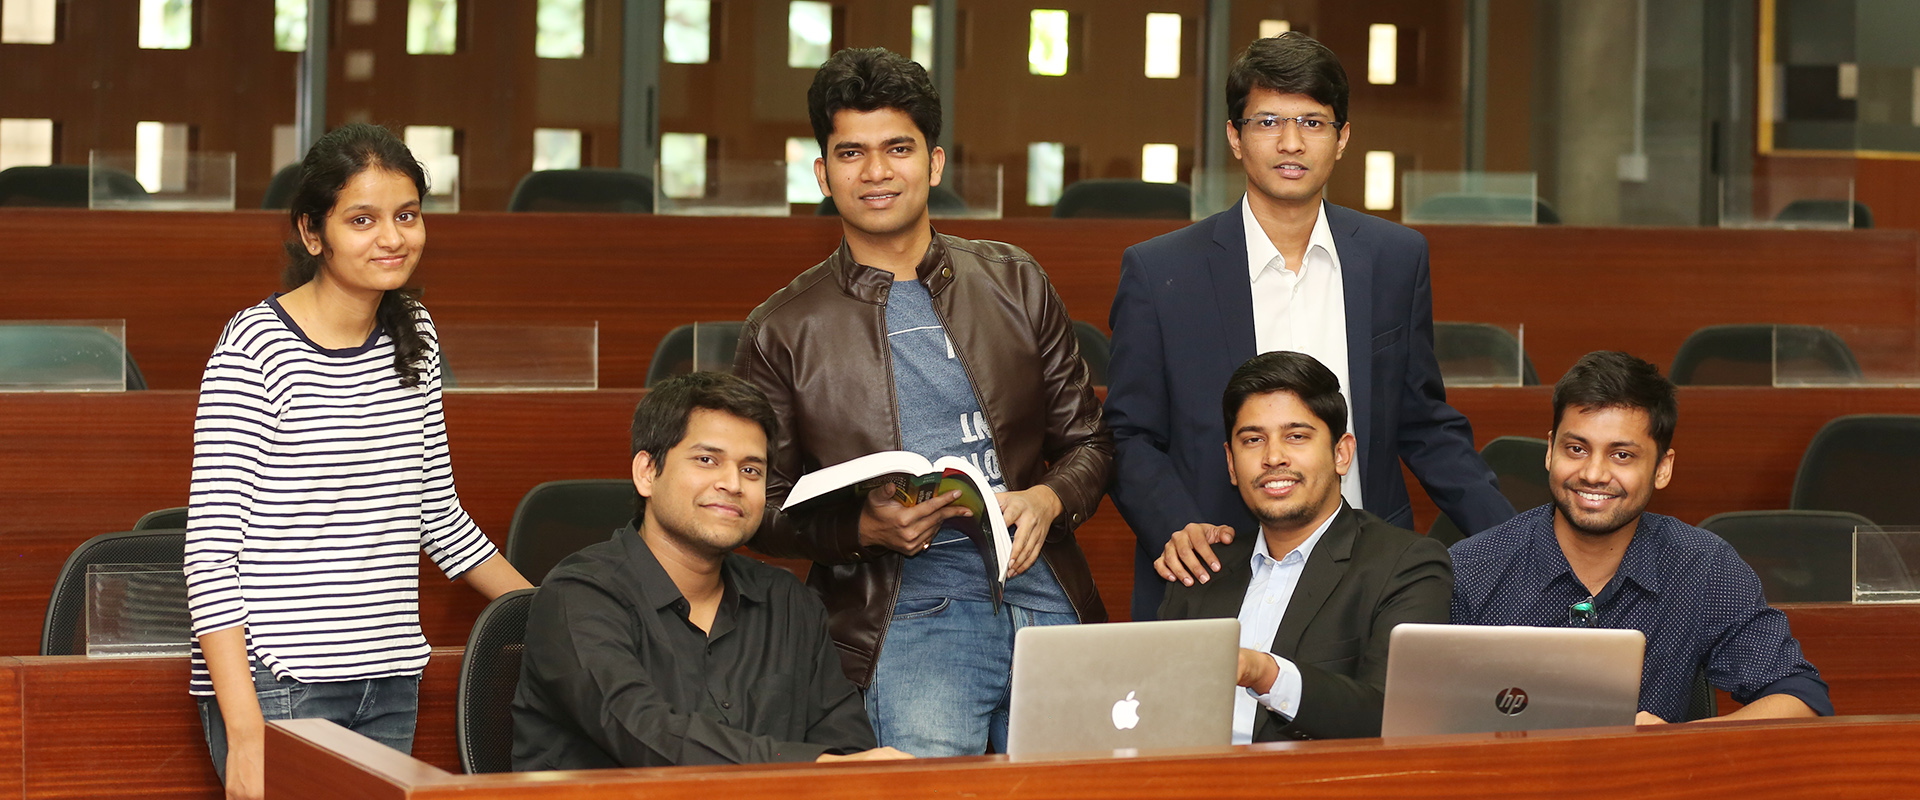 Image result for students studying iim